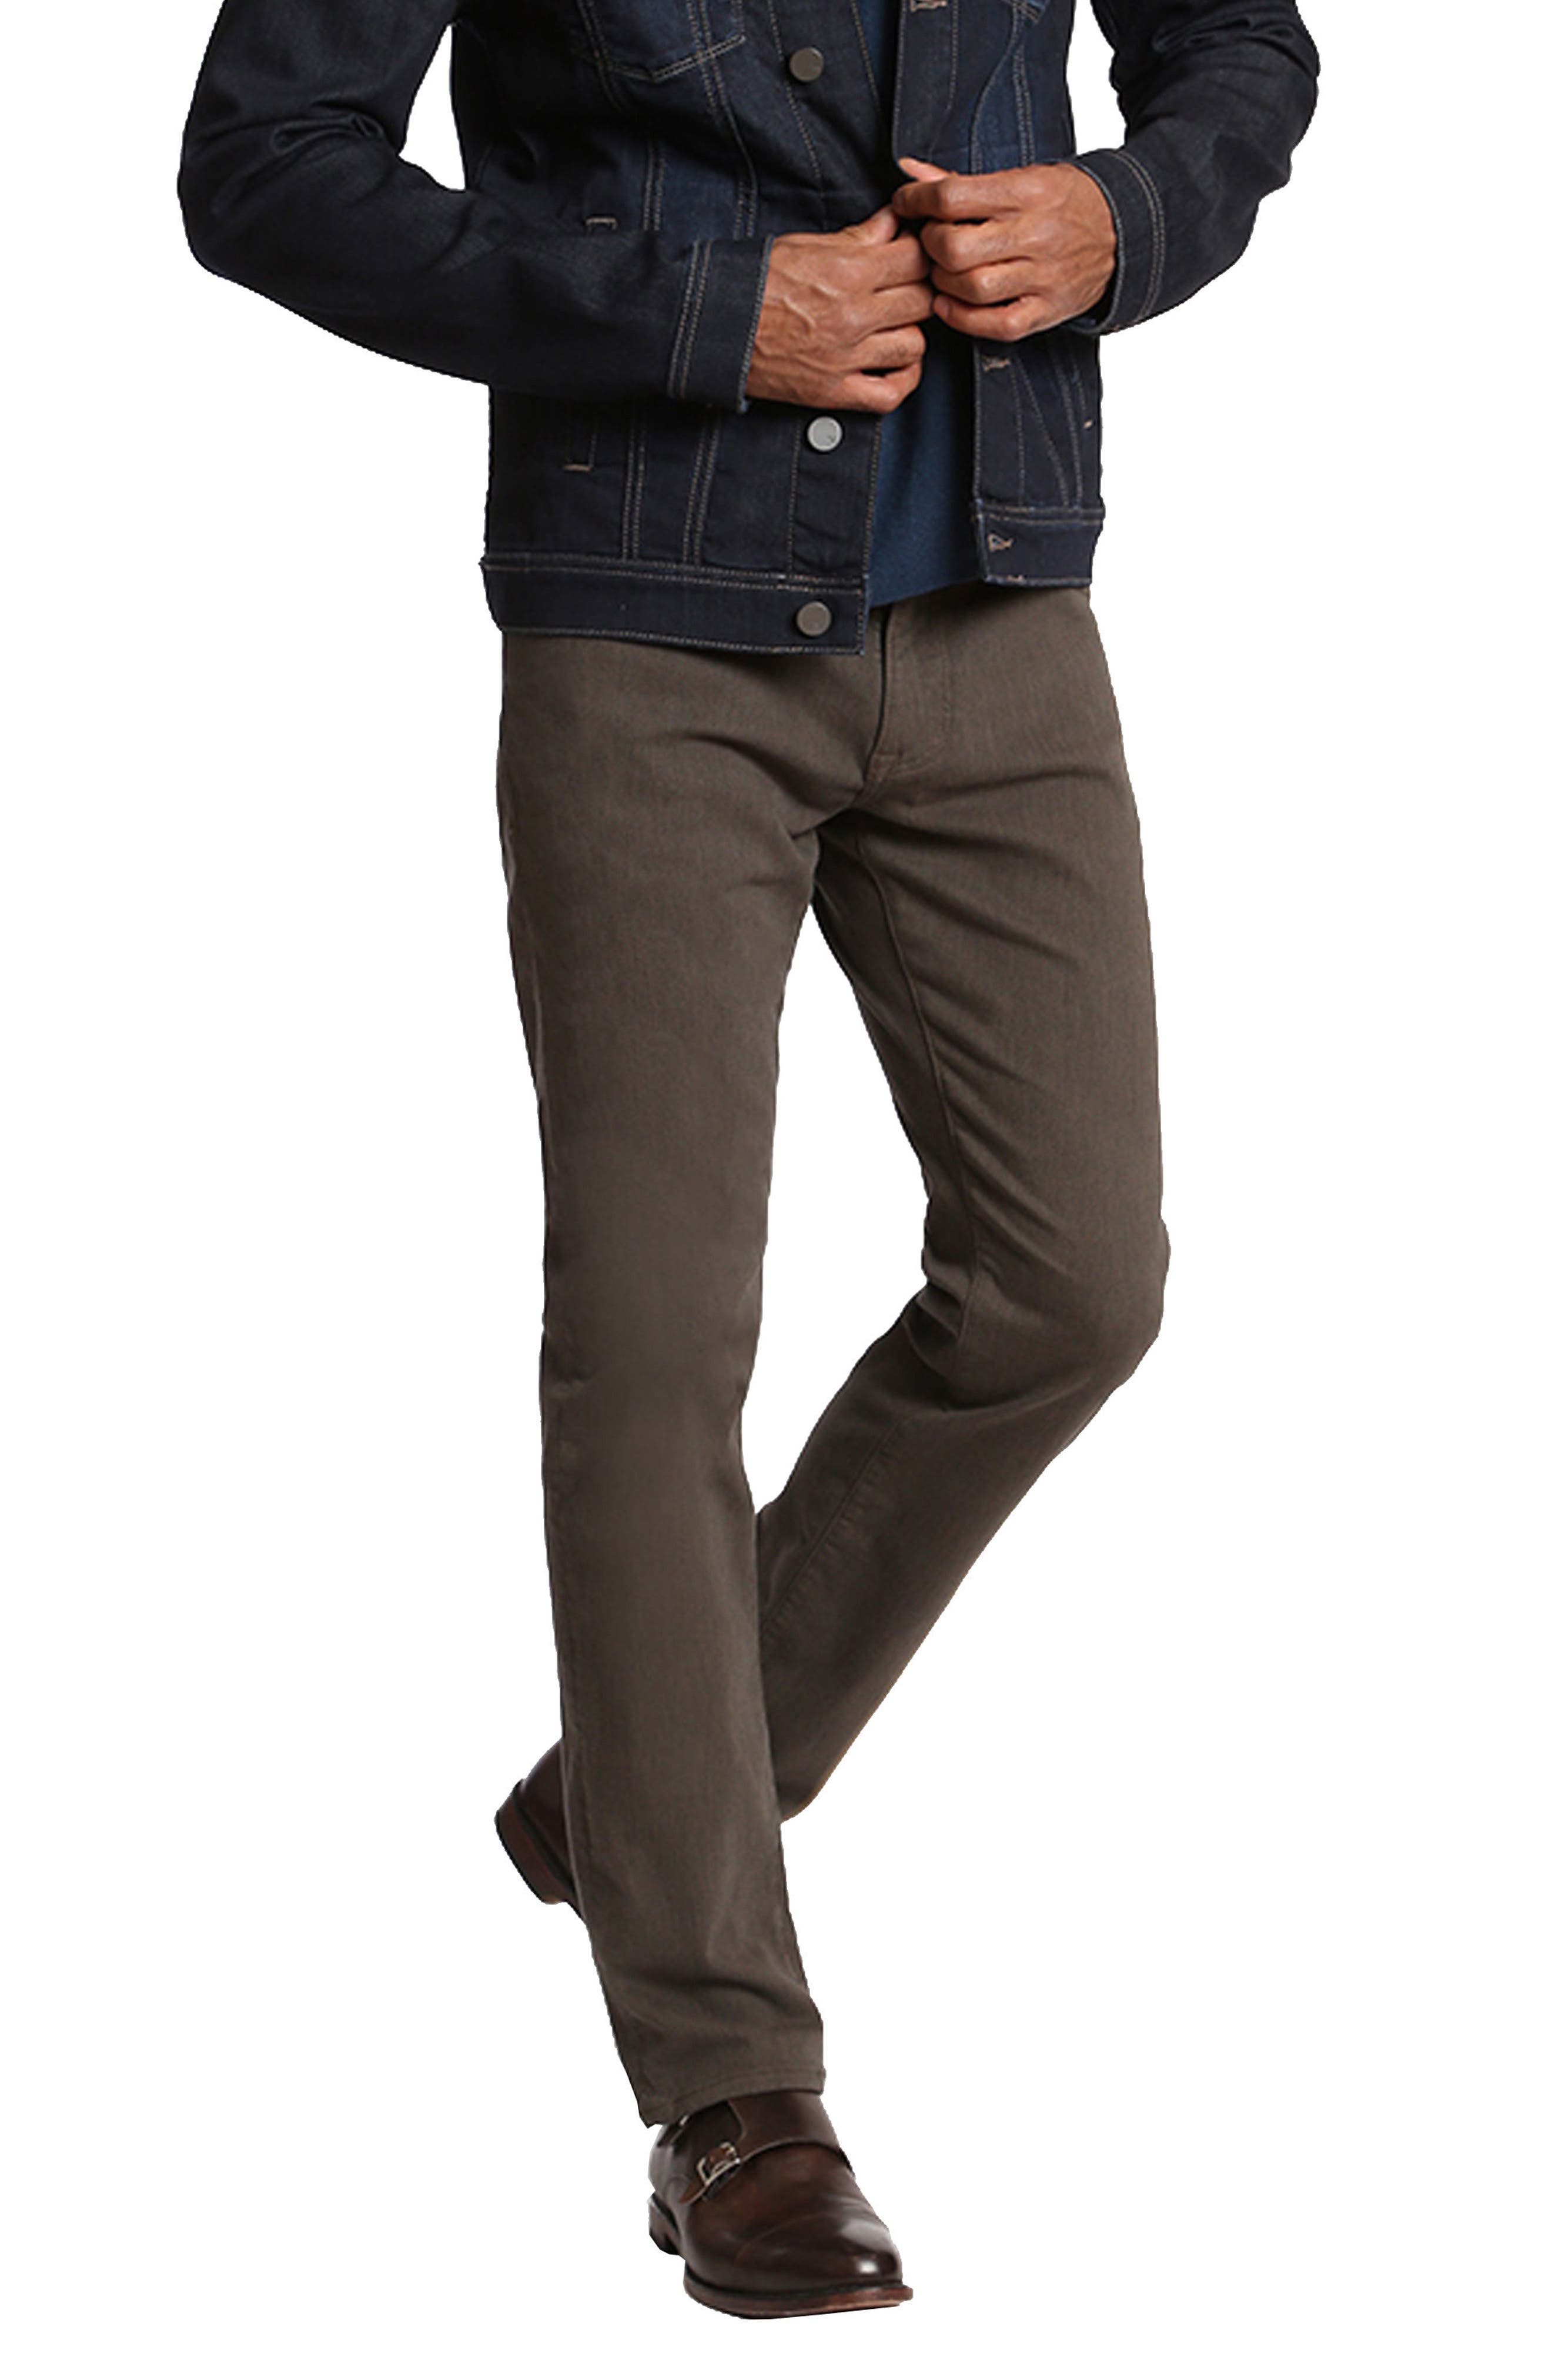 Charisma Relaxed Fit Jeans,                             Alternate thumbnail 4, color,                             Taupe Diagonal